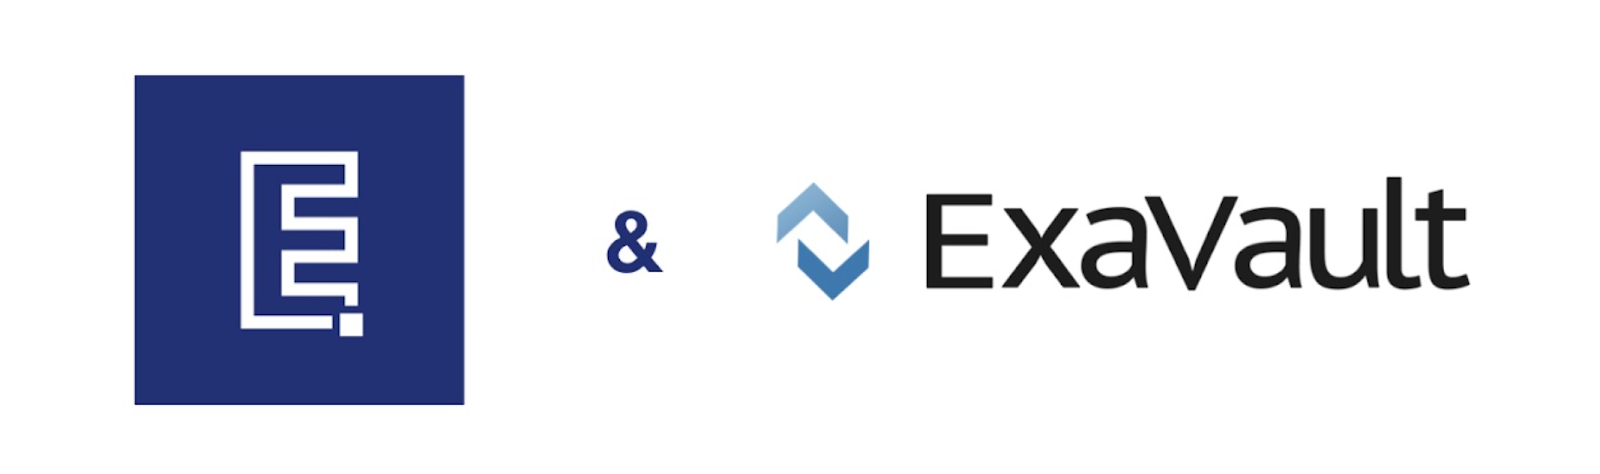 Excelify and ExaVault logos